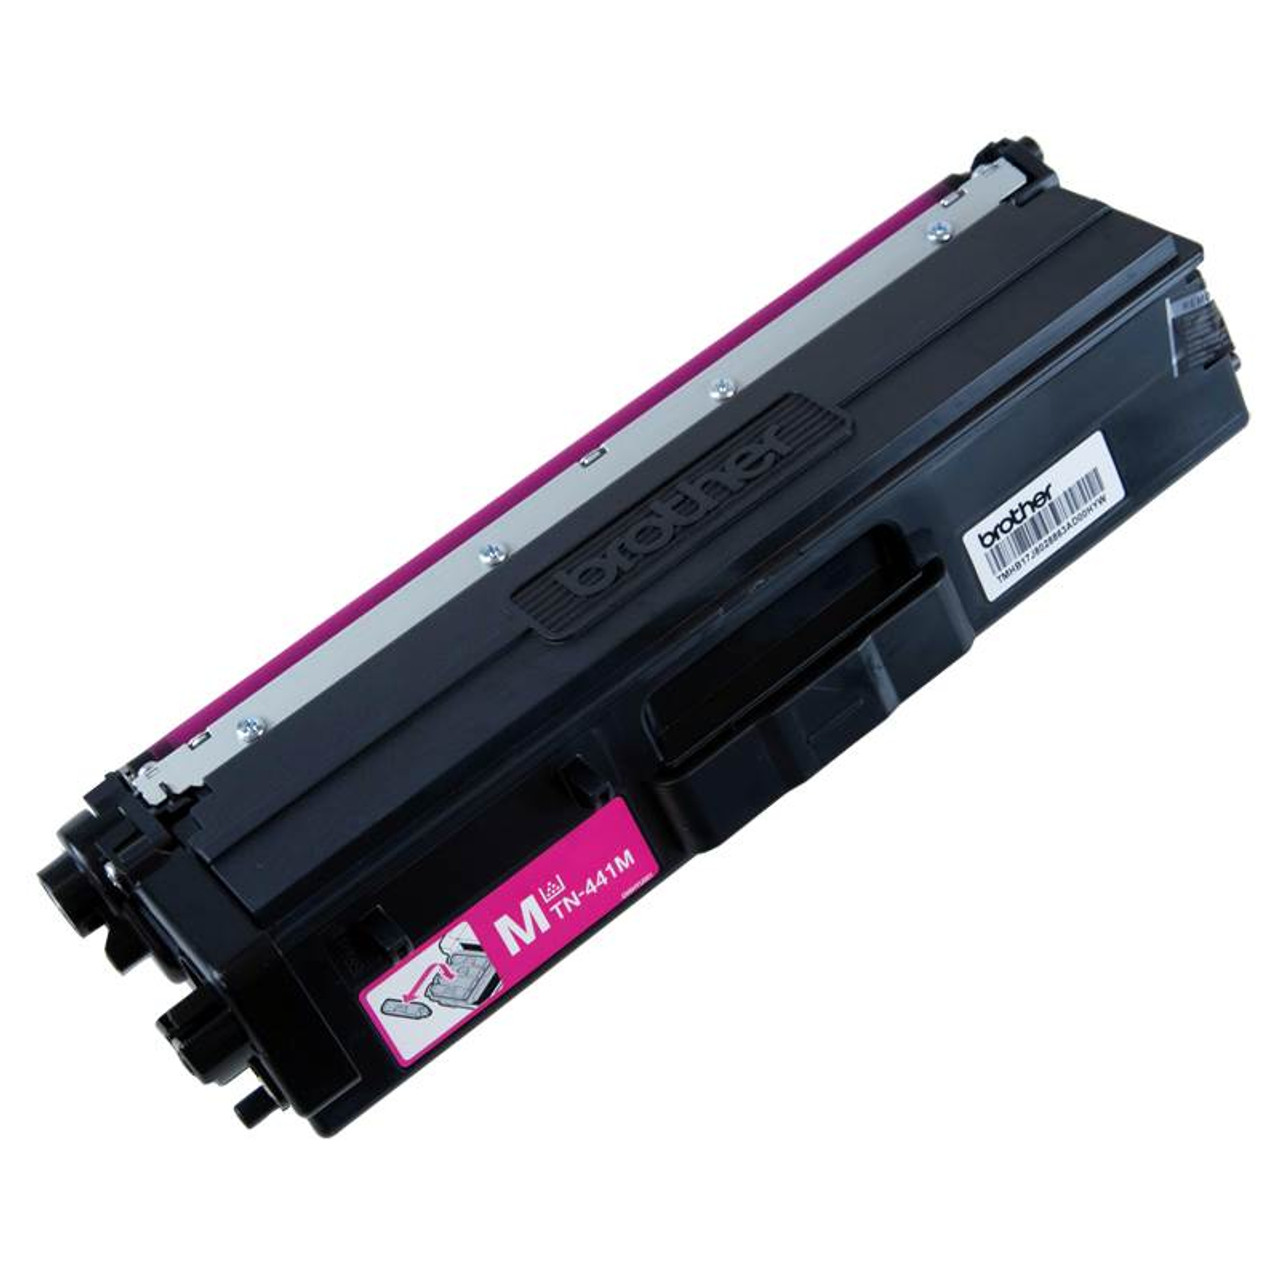 Image for Brother TN-441M Toner Cartridge - Magenta CX Computer Superstore